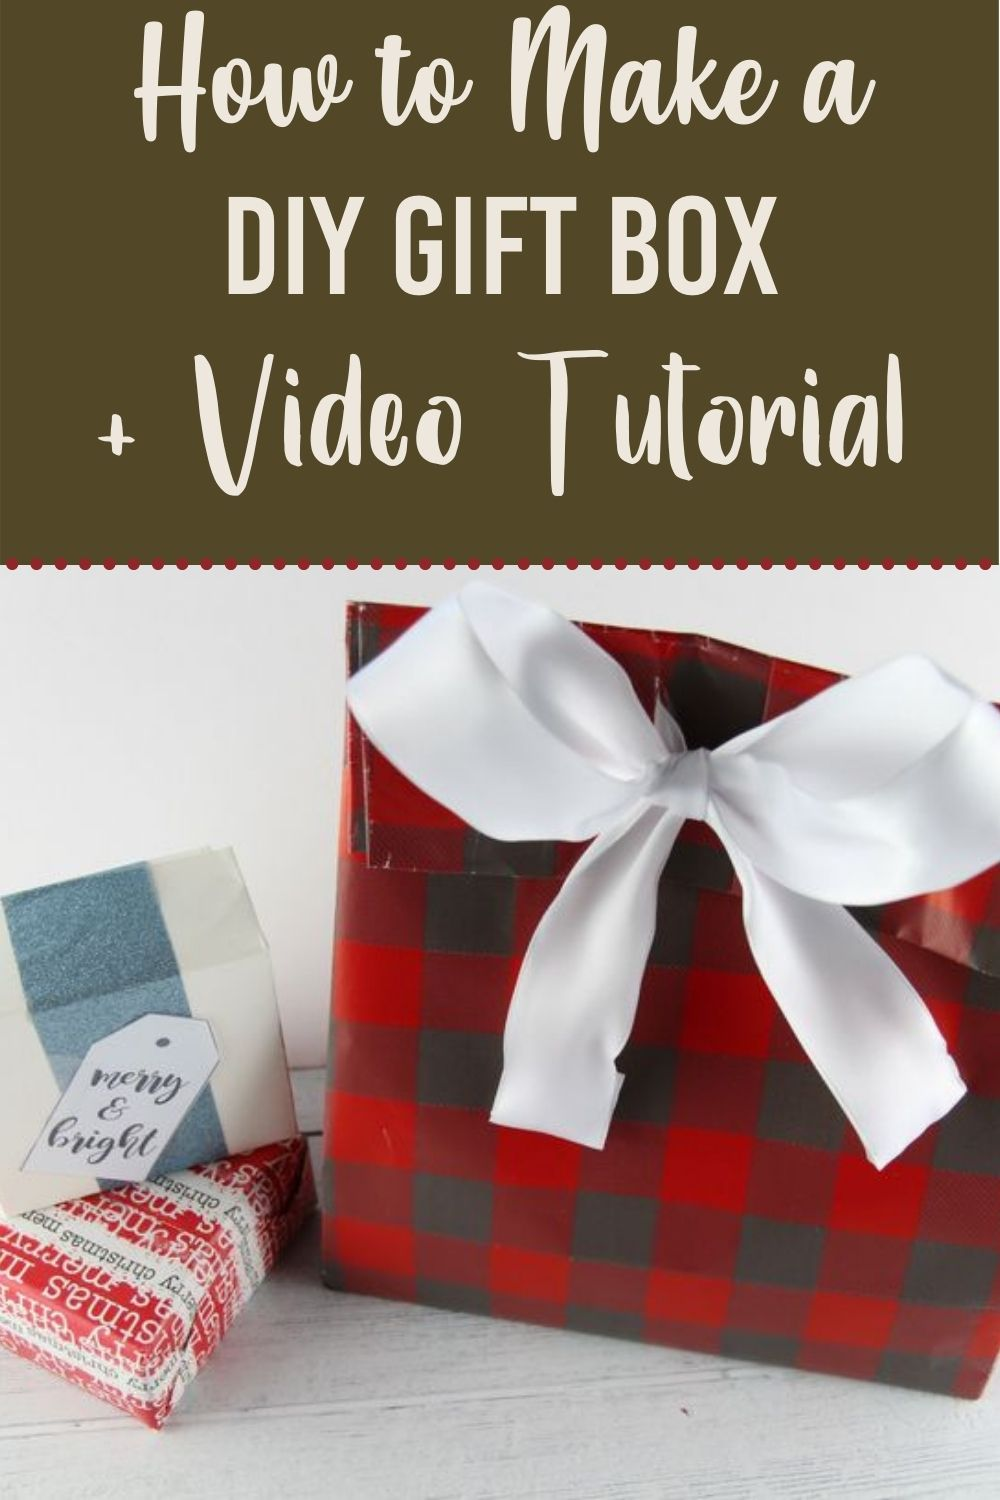 When it comes to wrapping presents finding good fitting boxes can be tricky.  In this post, I'm going to show you how to create DIY gift box.  #diy #giftbox #howtocreate via @homebyjenn